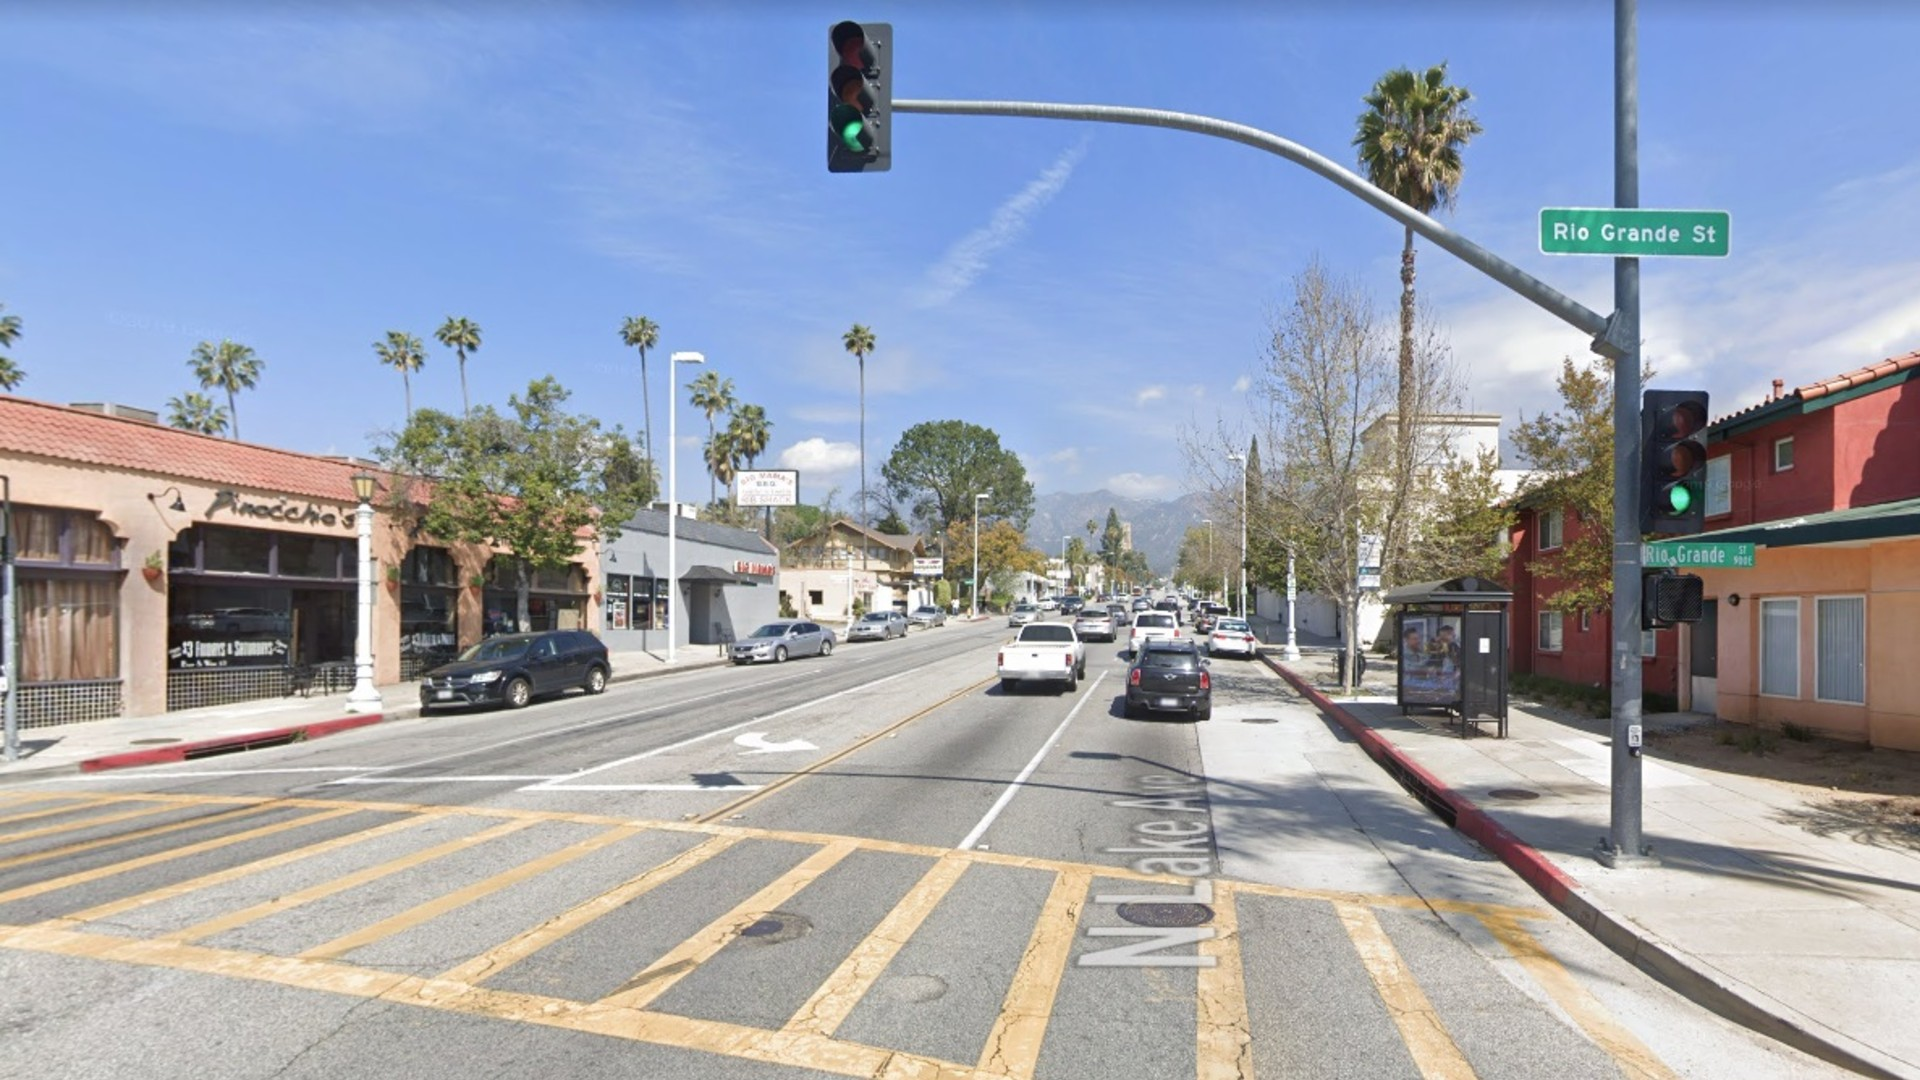 Lake Avenue, facing north at Rio Grande Street, in Pasadena, as pictured in a Google Street View image.